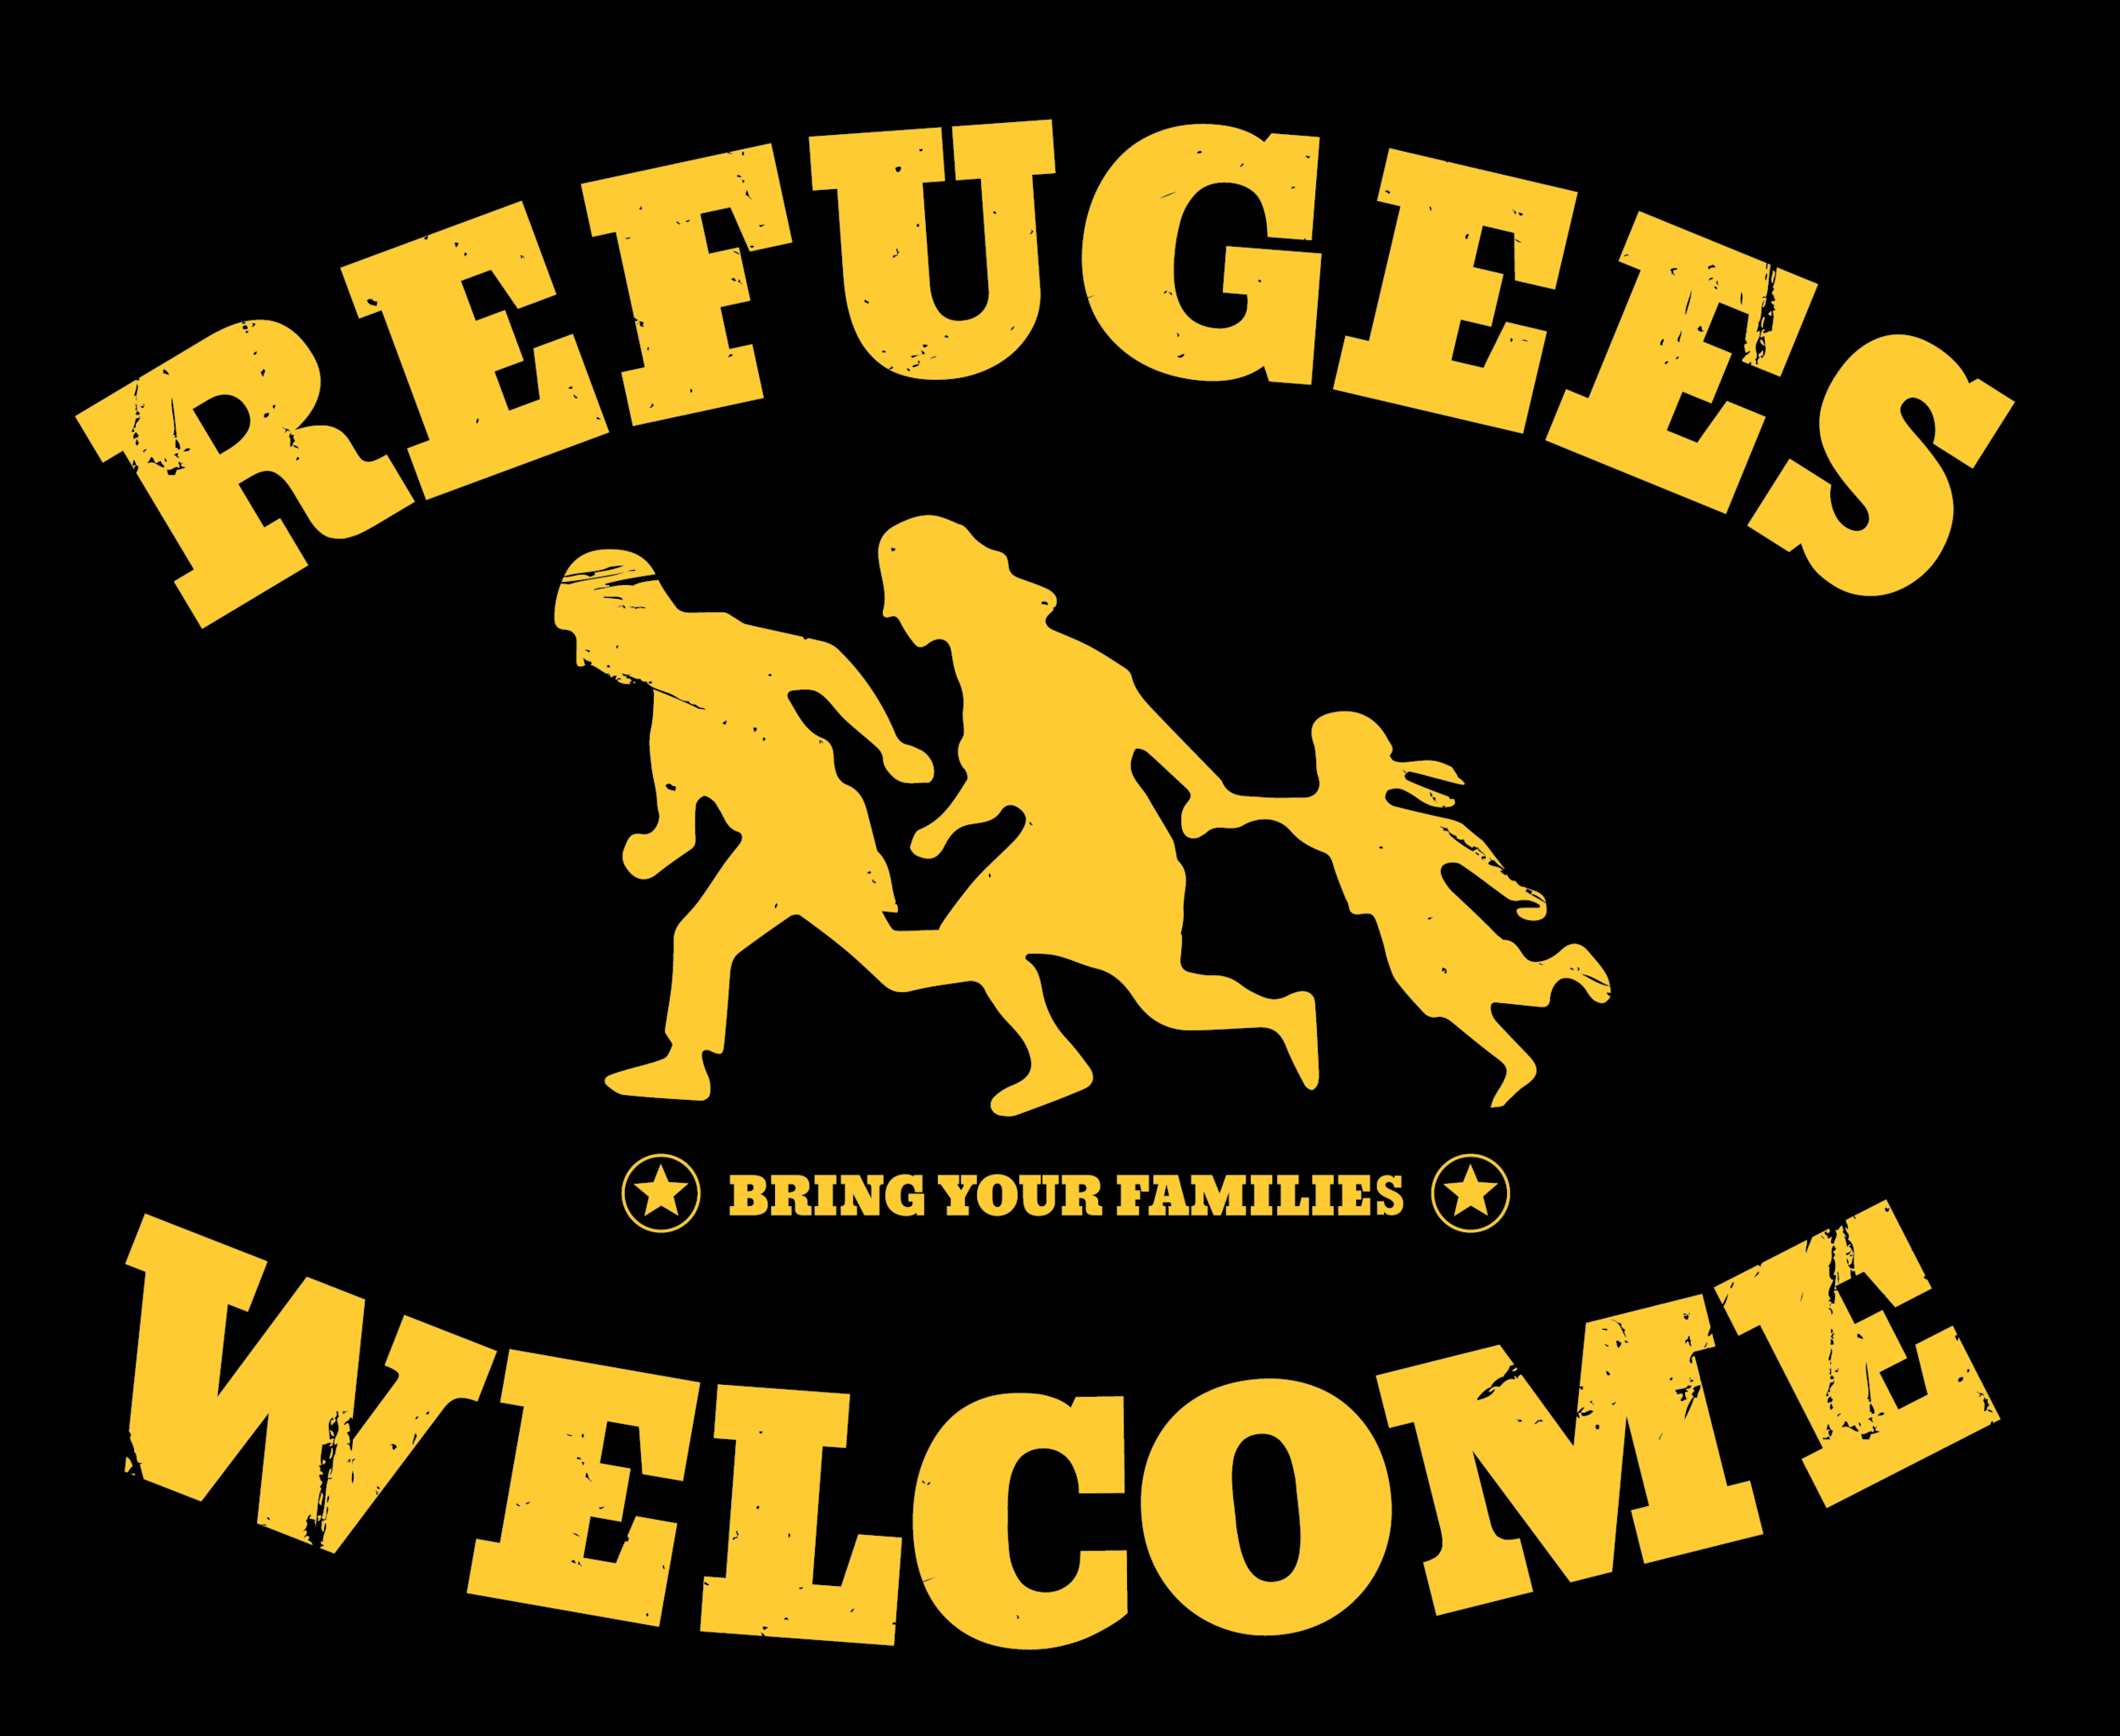 refugees_welcome-01.png